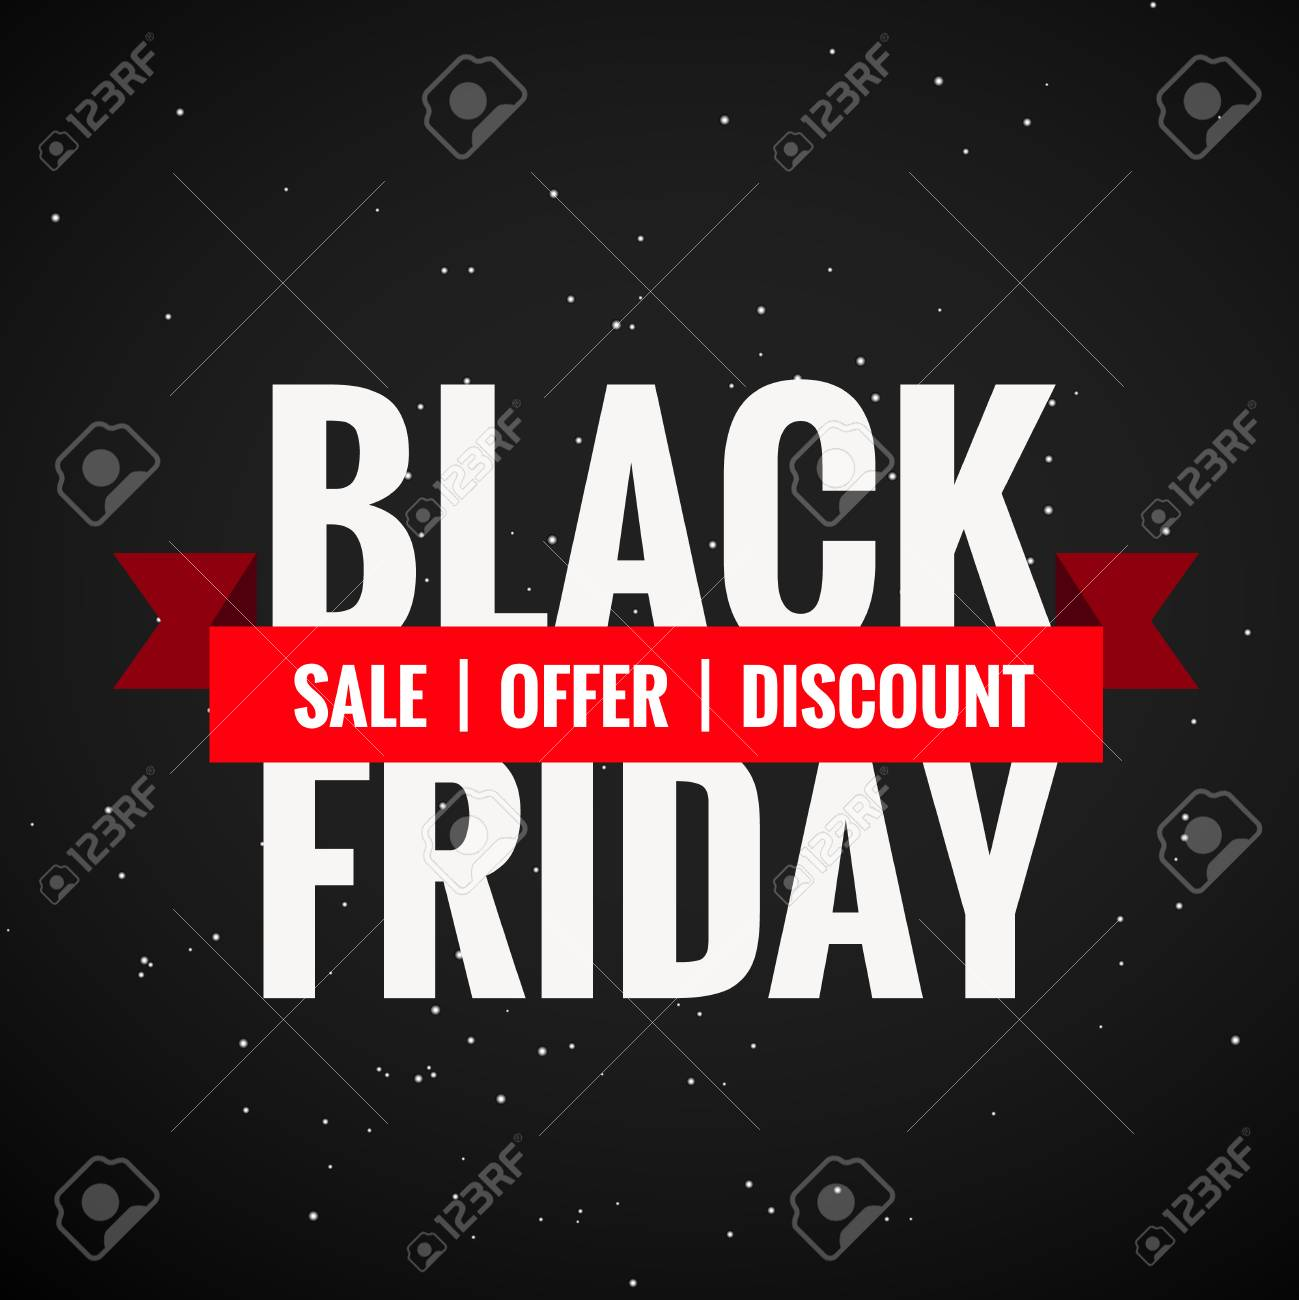 Black Friday Angebot Stock Photo